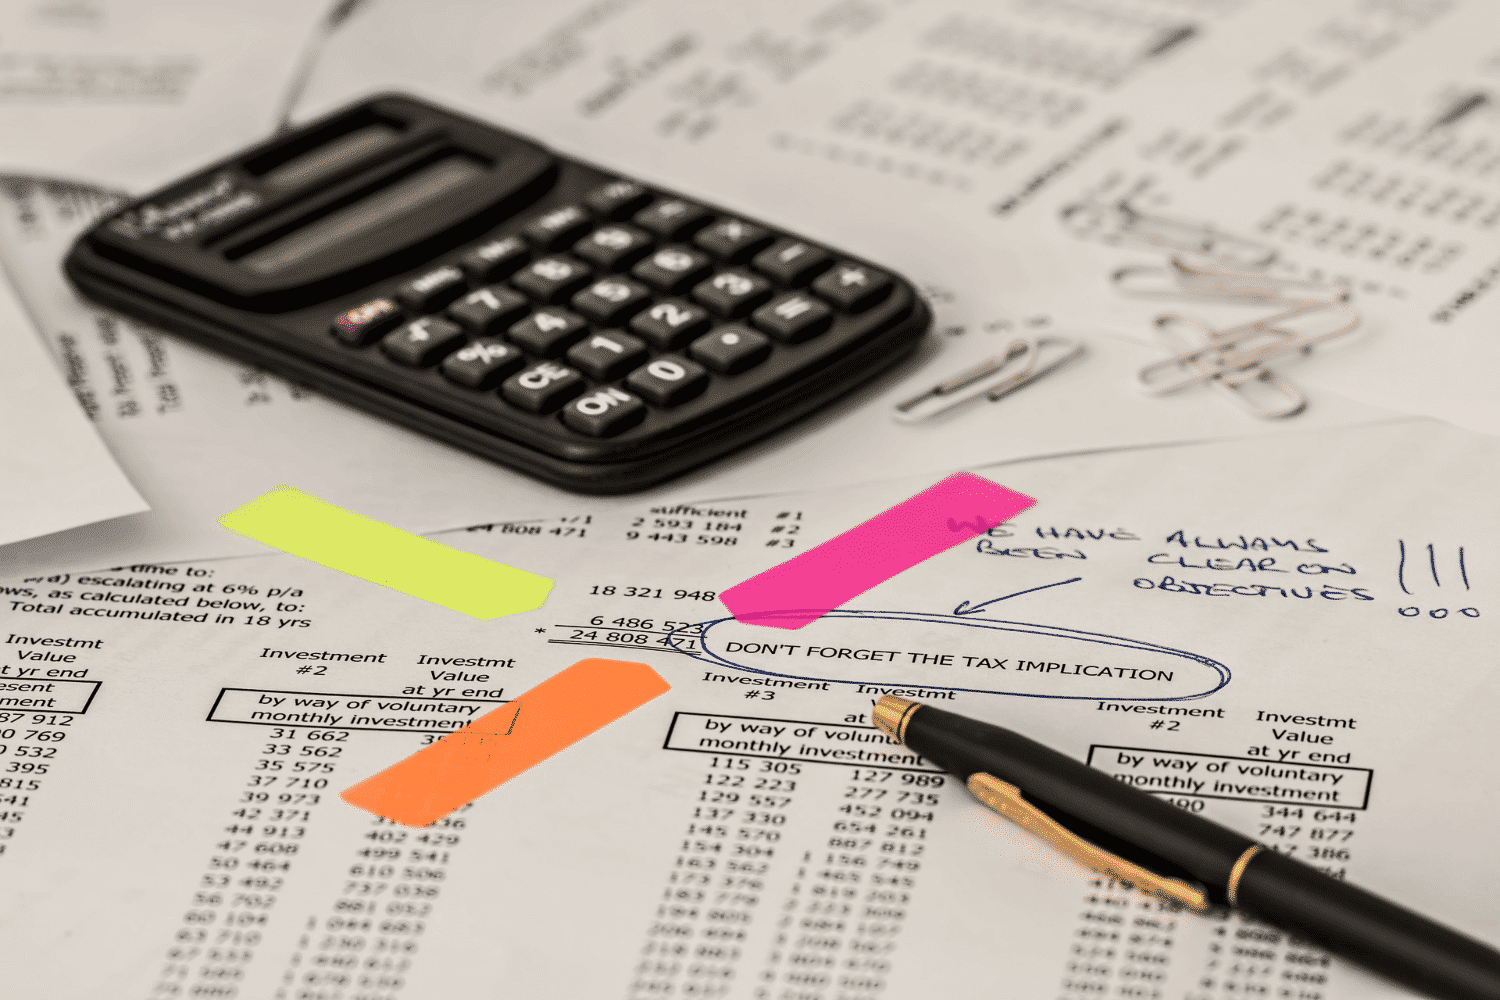 Bookkeeping - calculations with a calculator